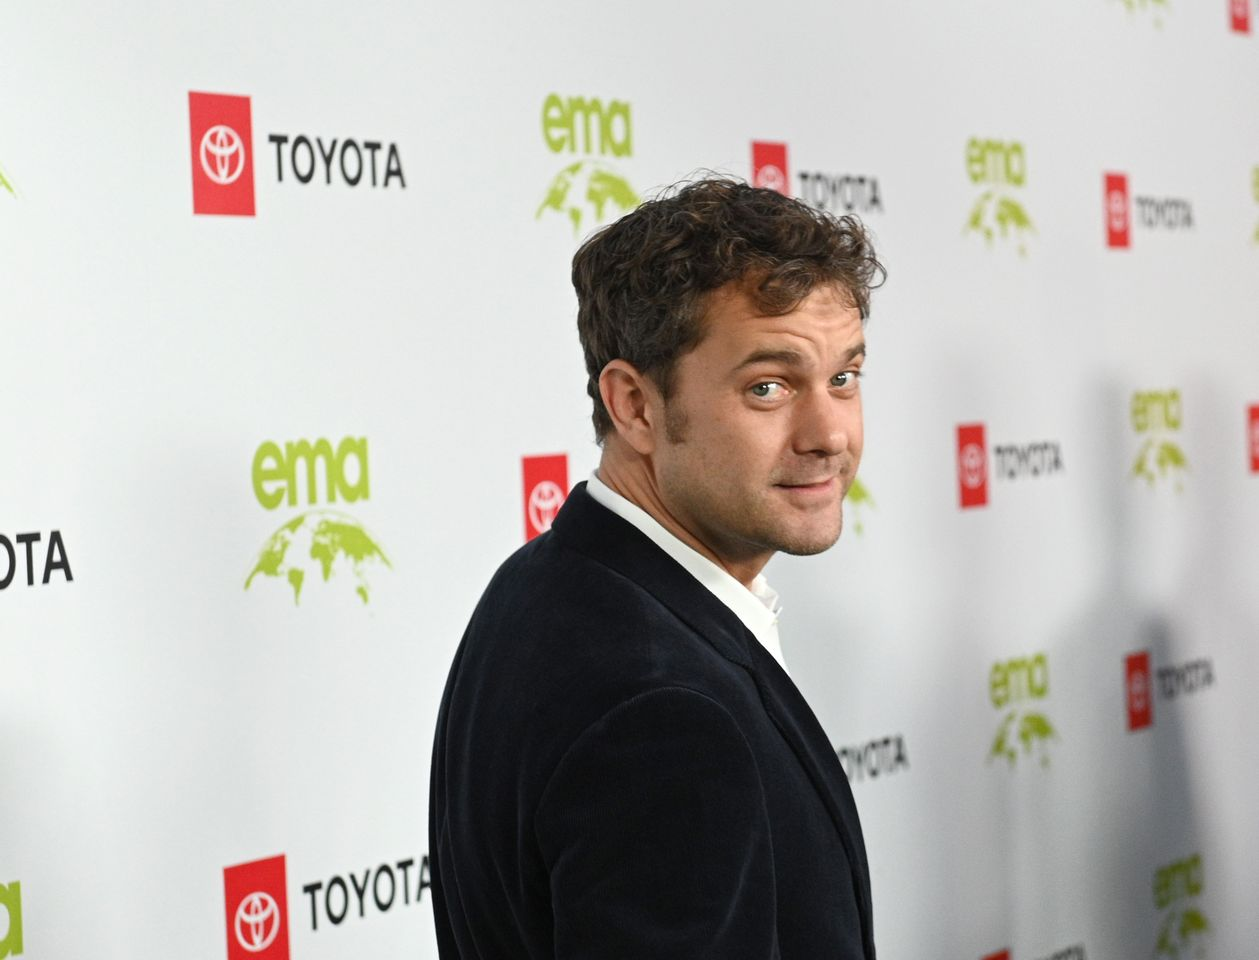 Joshua Jackson at the Environmental Media Association 2nd Annual Honors Benefit Gala at Private Residence on September 28, 2019 in Pacific Palisades, California. | Source: Getty Images